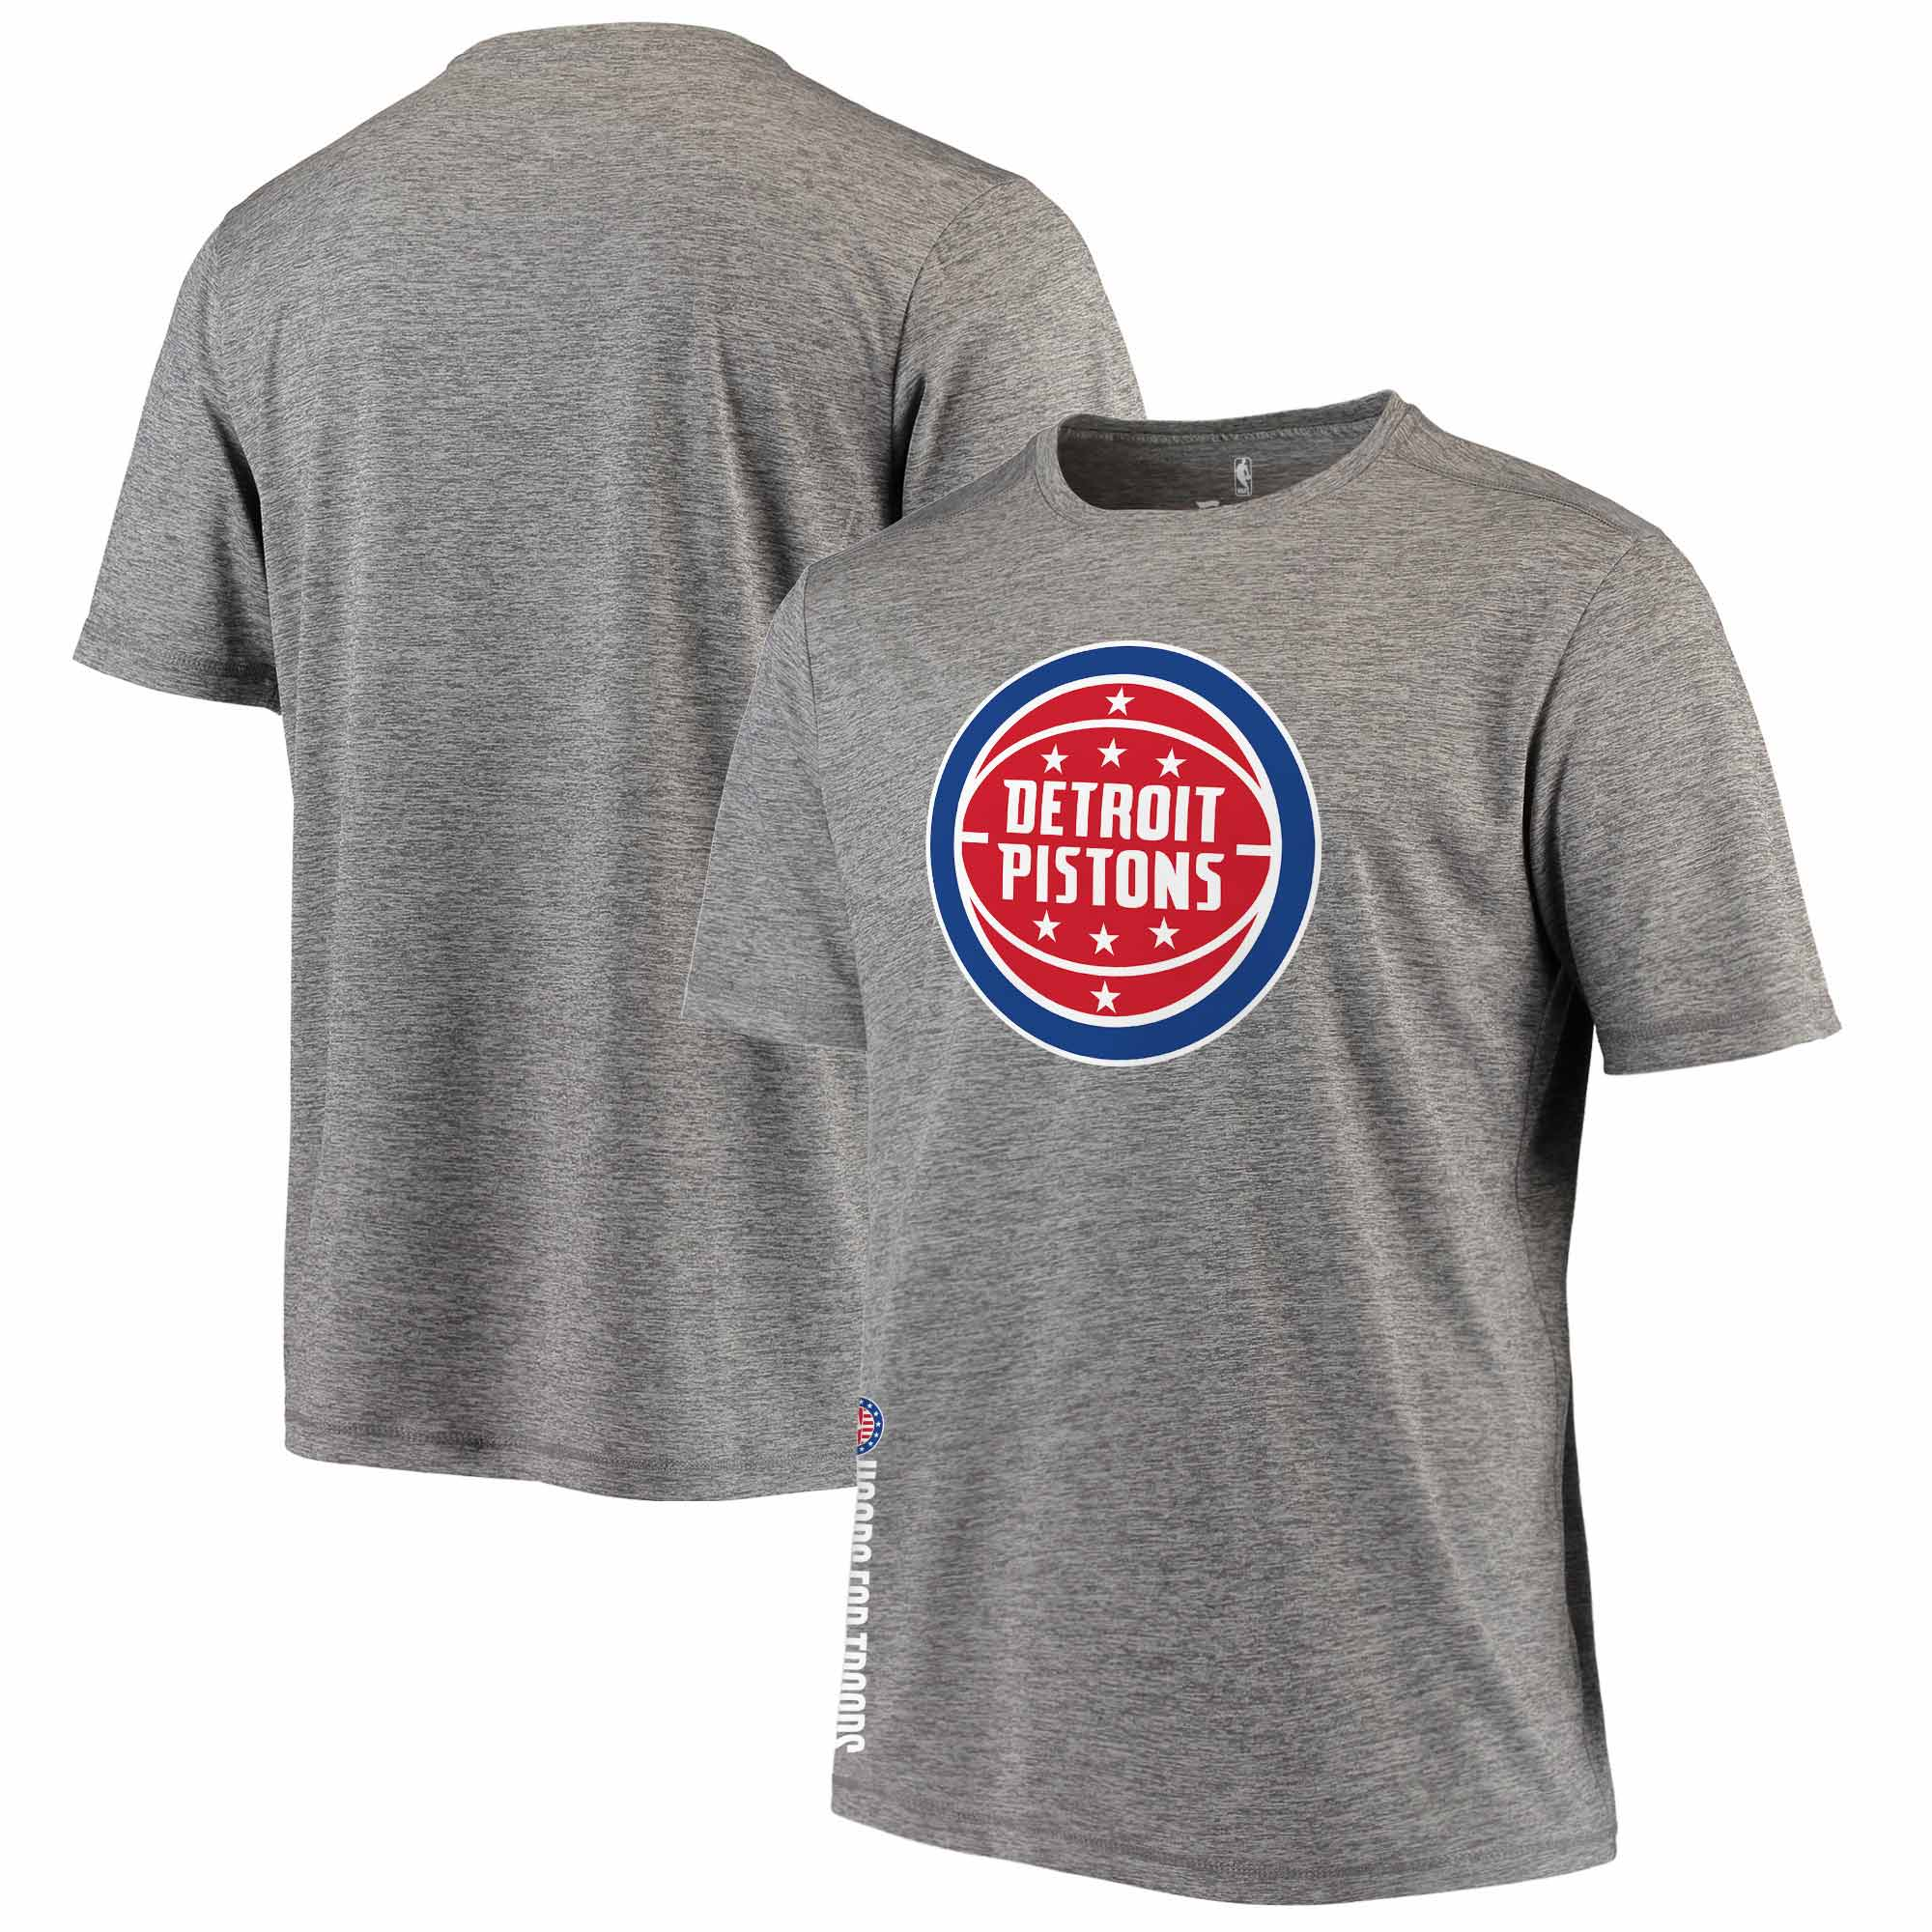 Detroit Pistons Fanatics Branded Hoops For Troops T-Shirt - Heathered Gray